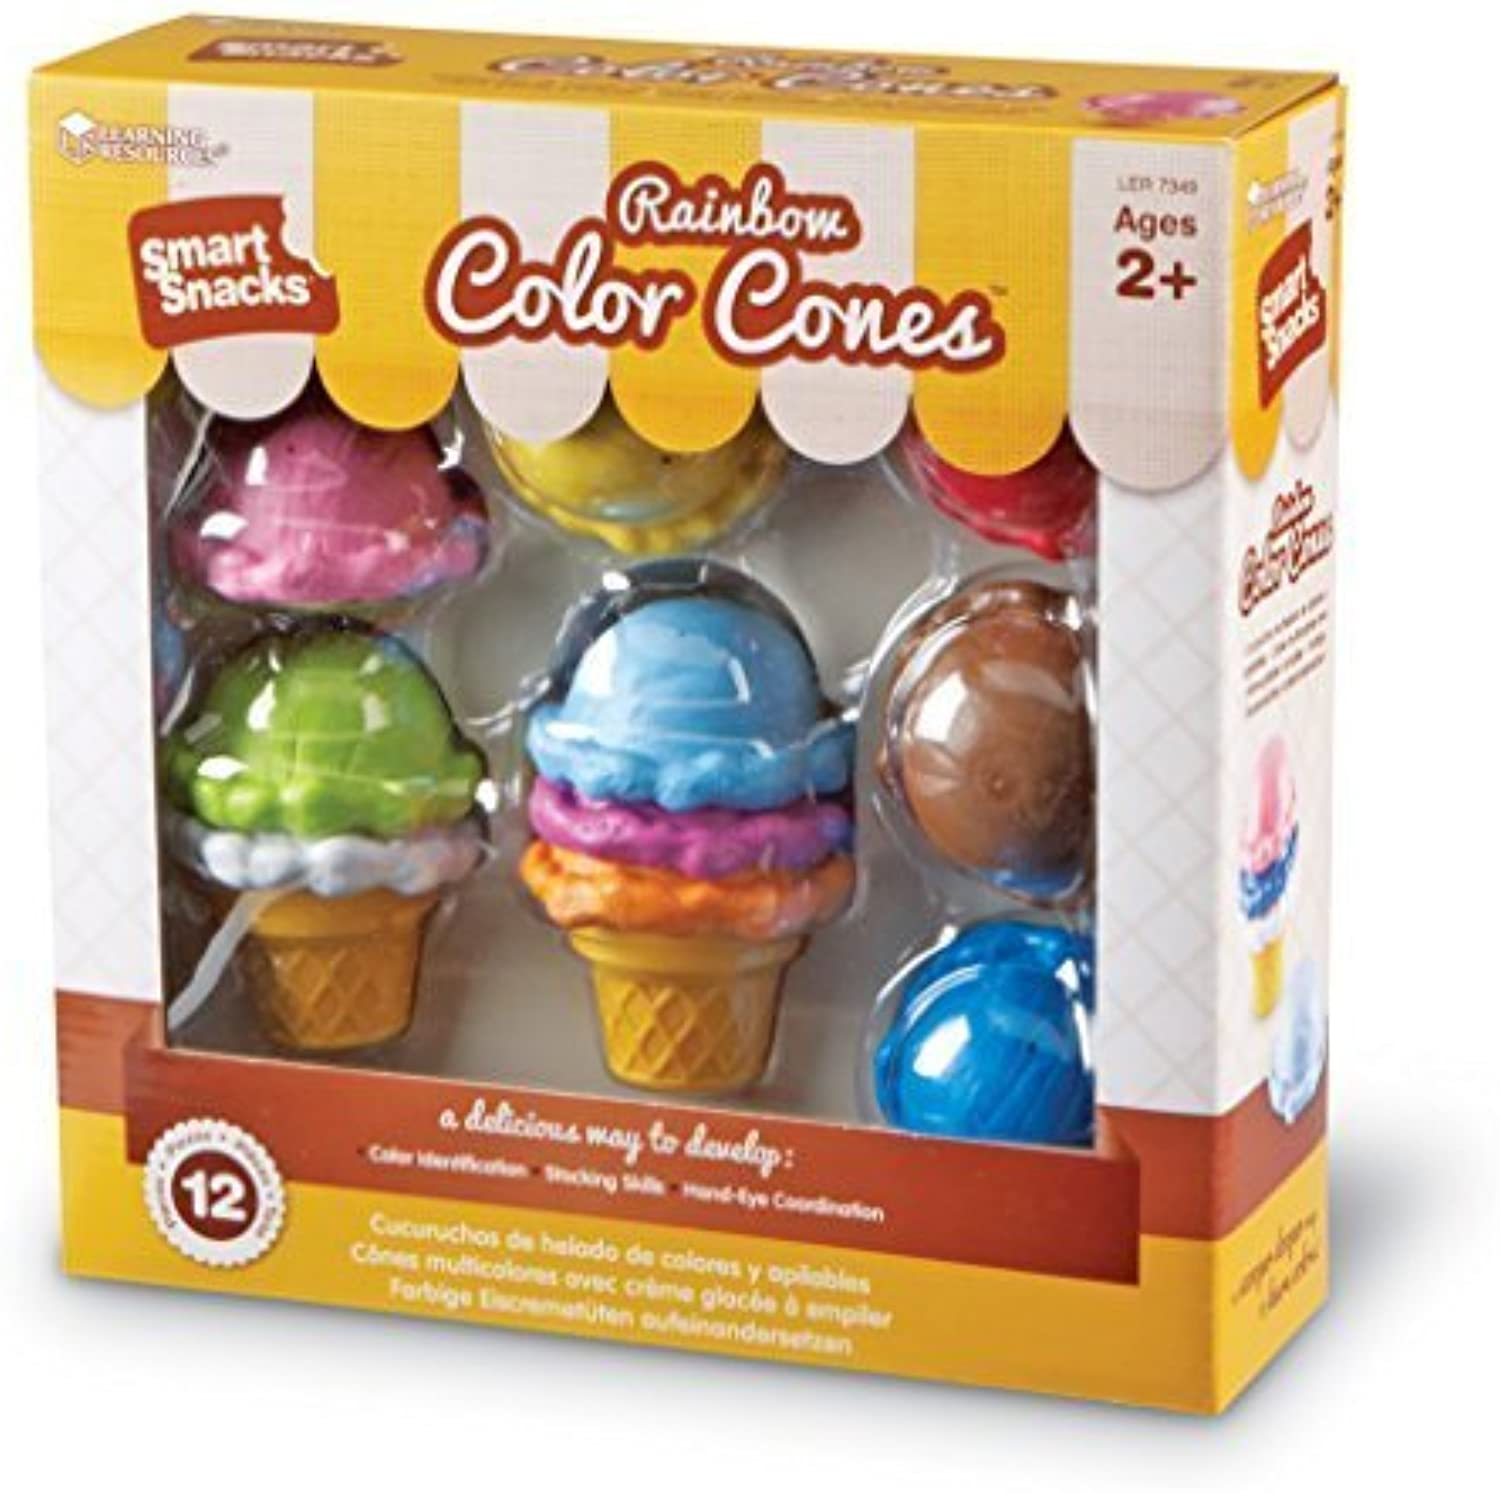 Learning Resources Smart Snacks Rainbow color Cones by Learning Resources